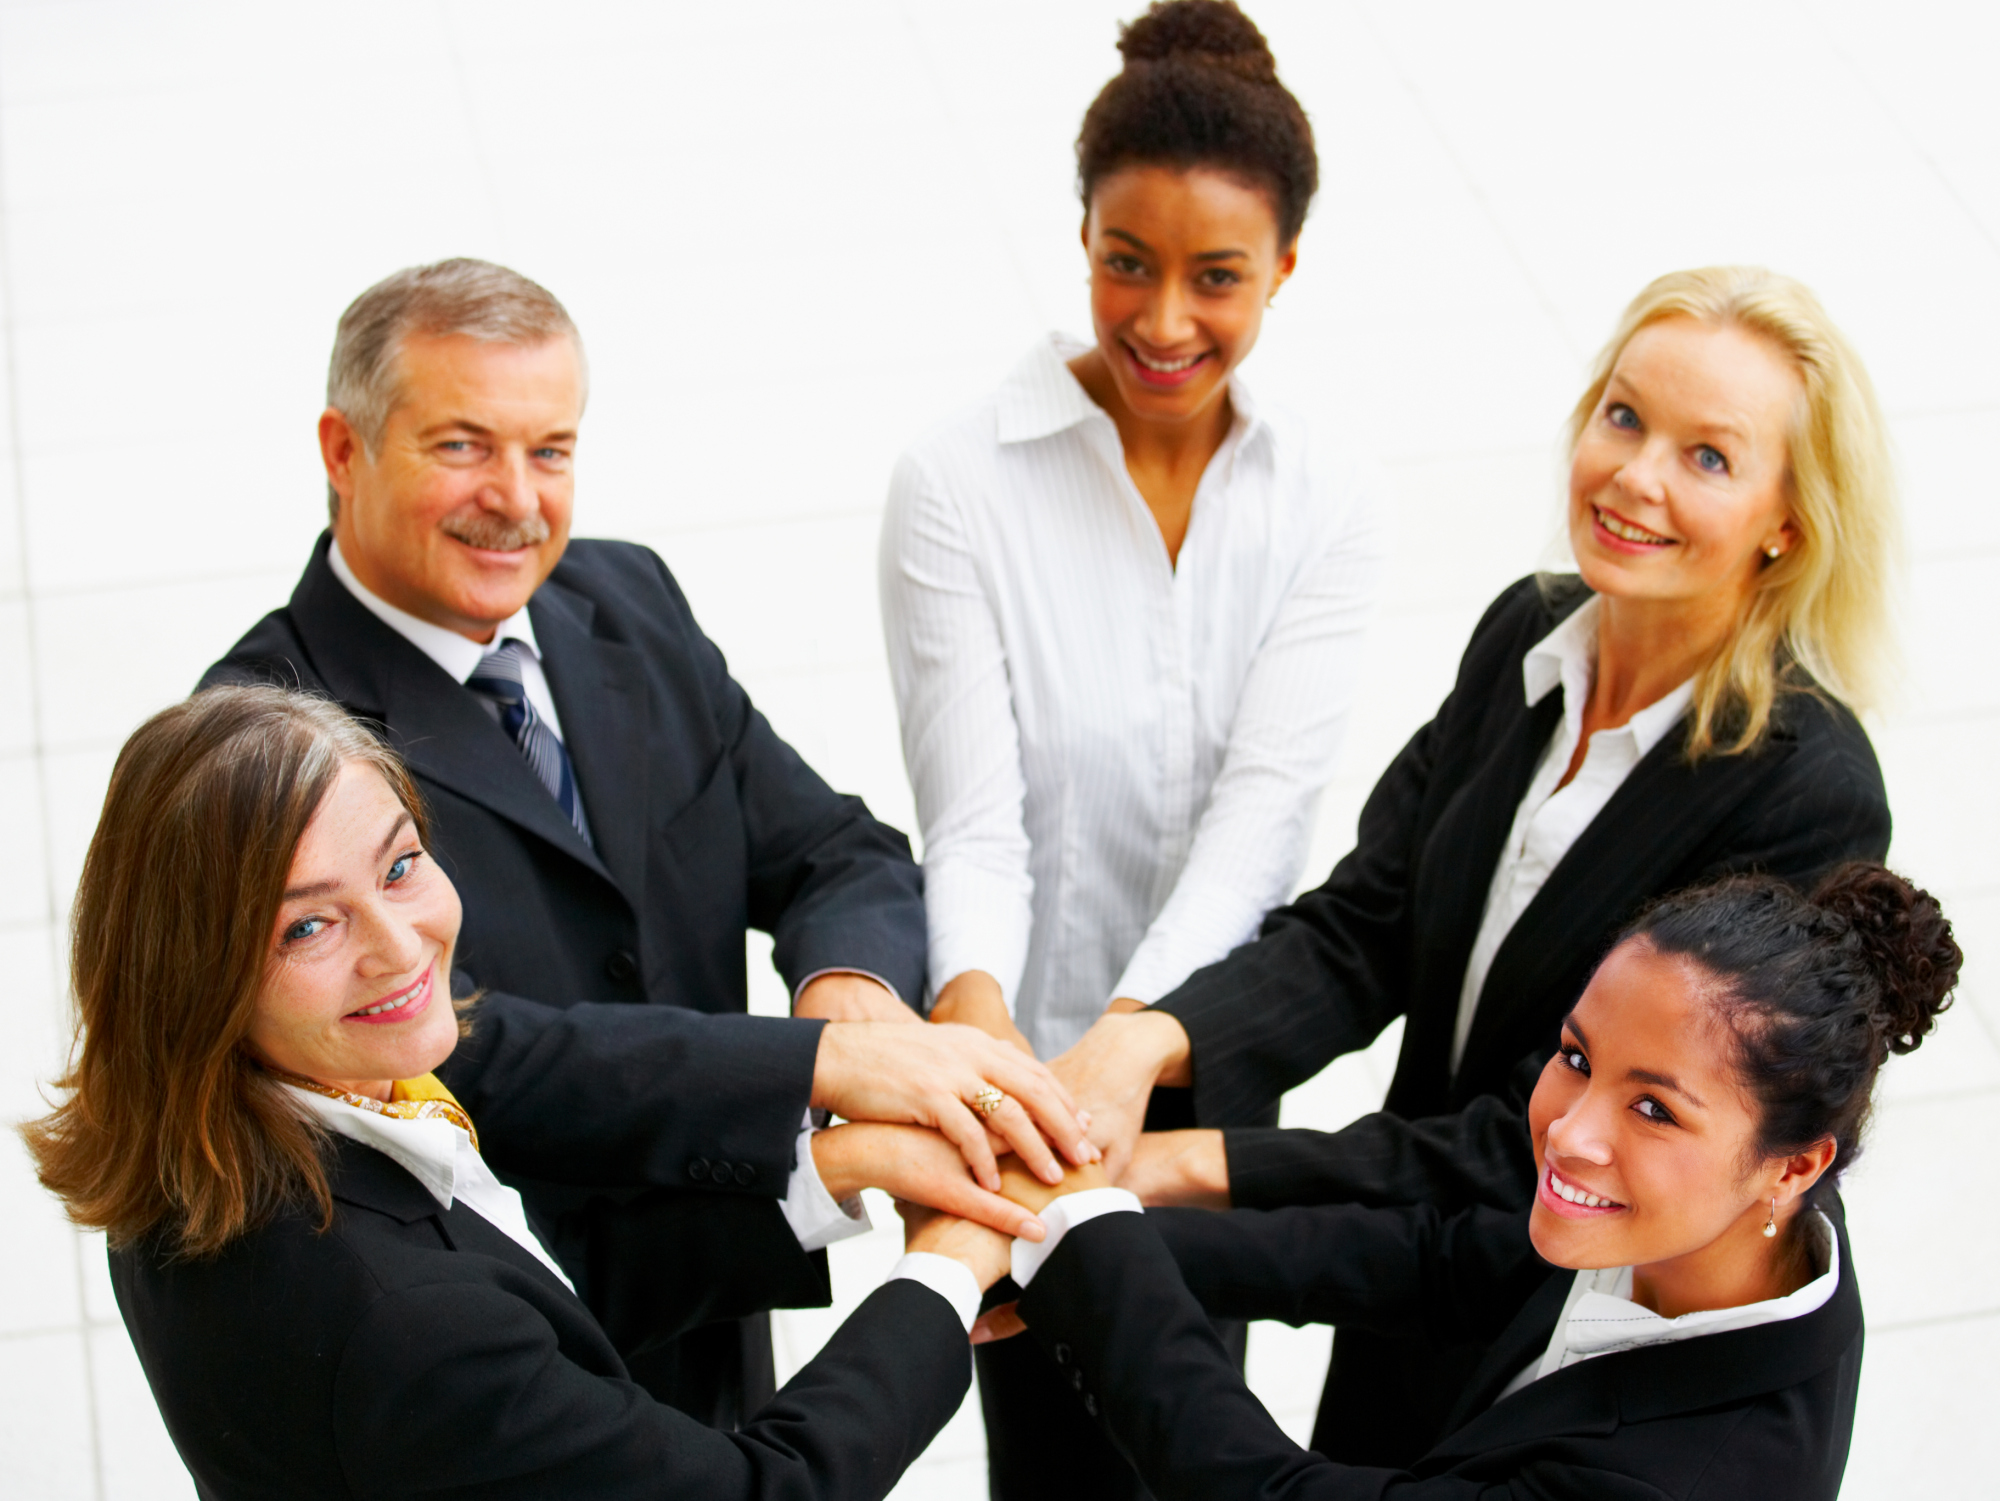 4 Ways to Build a Powerful Business Team